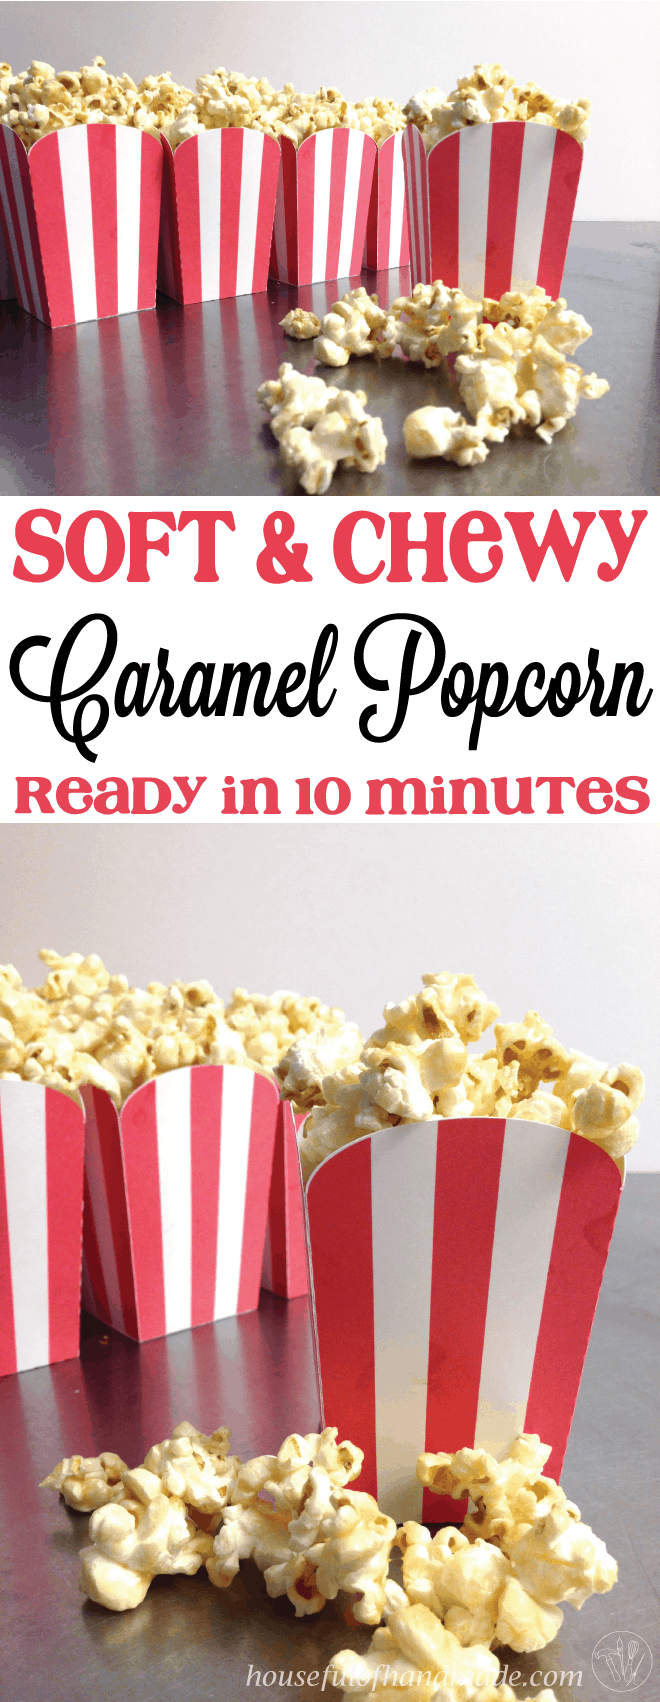 The best 10 minute soft & chewy caramel popcorn from Houseful of Handmade.